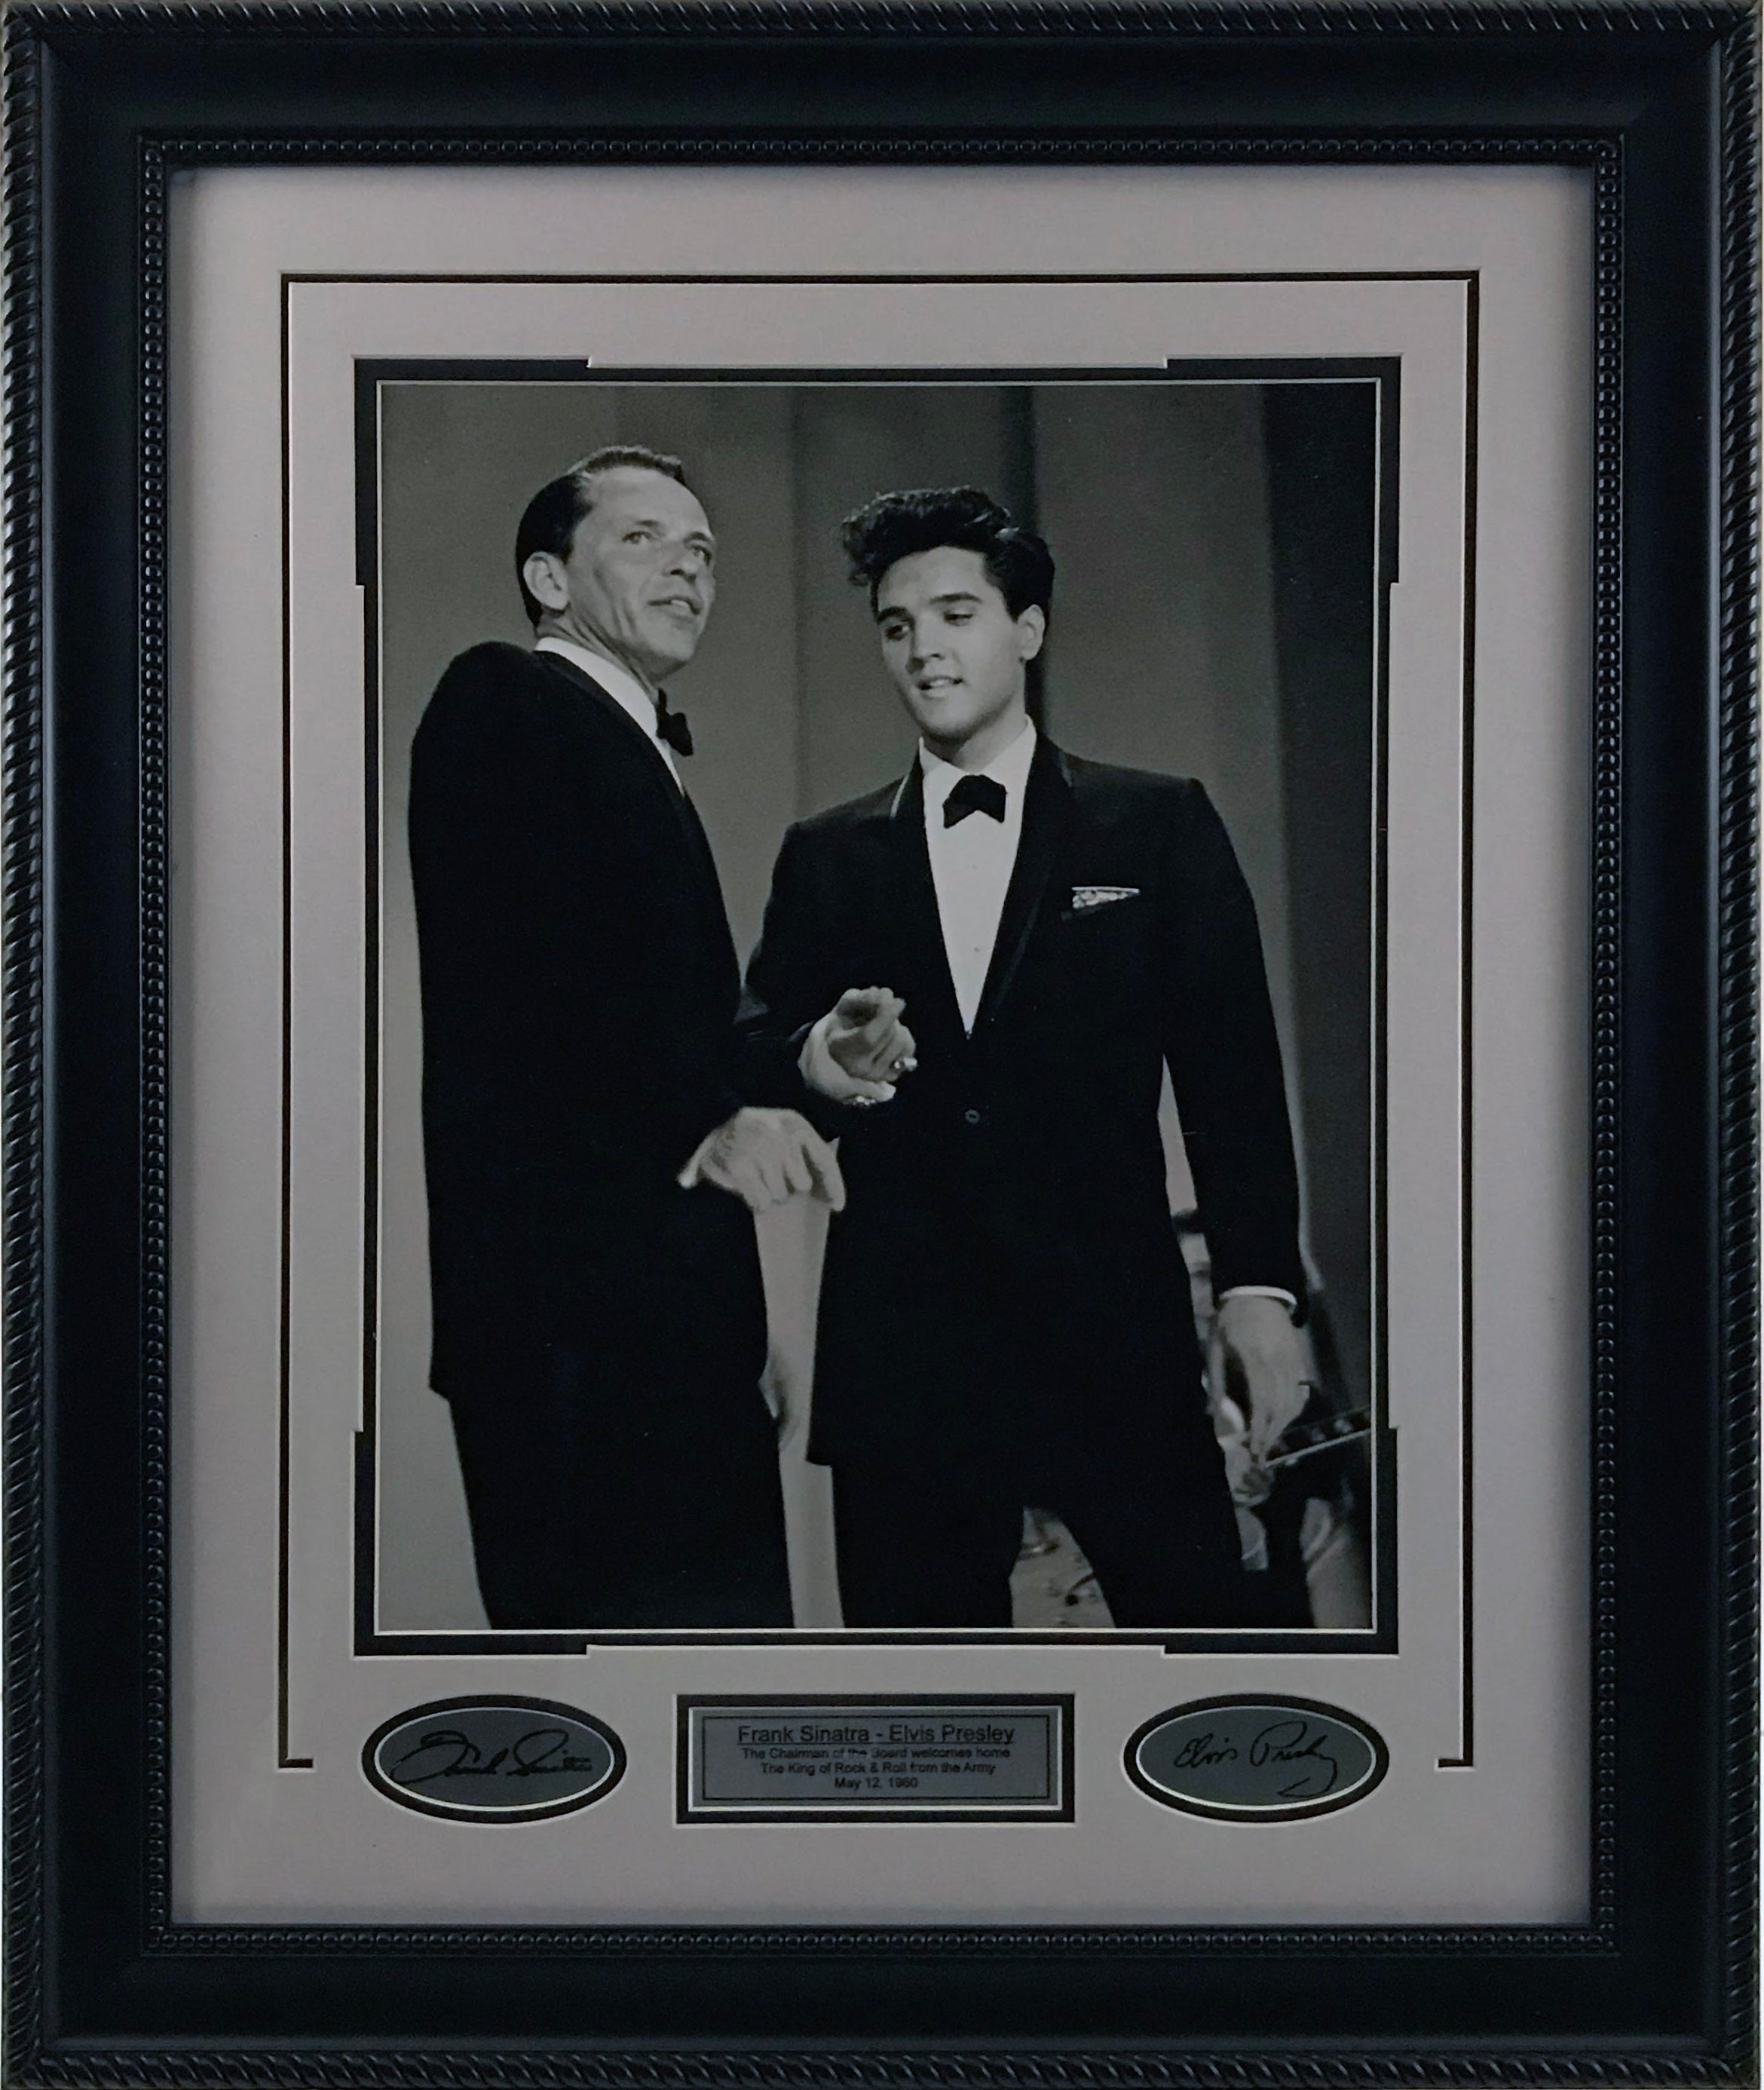 Elvis & Sinatra Framed 16x20 Photo w/ Laser Signatures - Latitude Sports Marketing